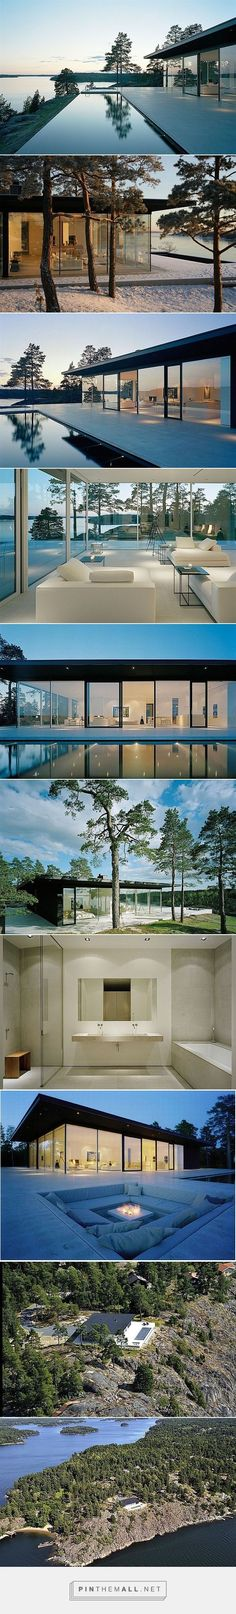 Stunning Swedish Villa With Lake Views modern/contemporary art. The house was designed by John Robert Nilsson to prove the seamless connection between nature and design. There is a lavish swimming pool that looks more like an infinity pool, floor to ceili Amazing Architecture, Interior Architecture, Modern Interior, Terrasse Design, Casas Containers, Design Exterior, Bungalows, Modern House Design, Future House